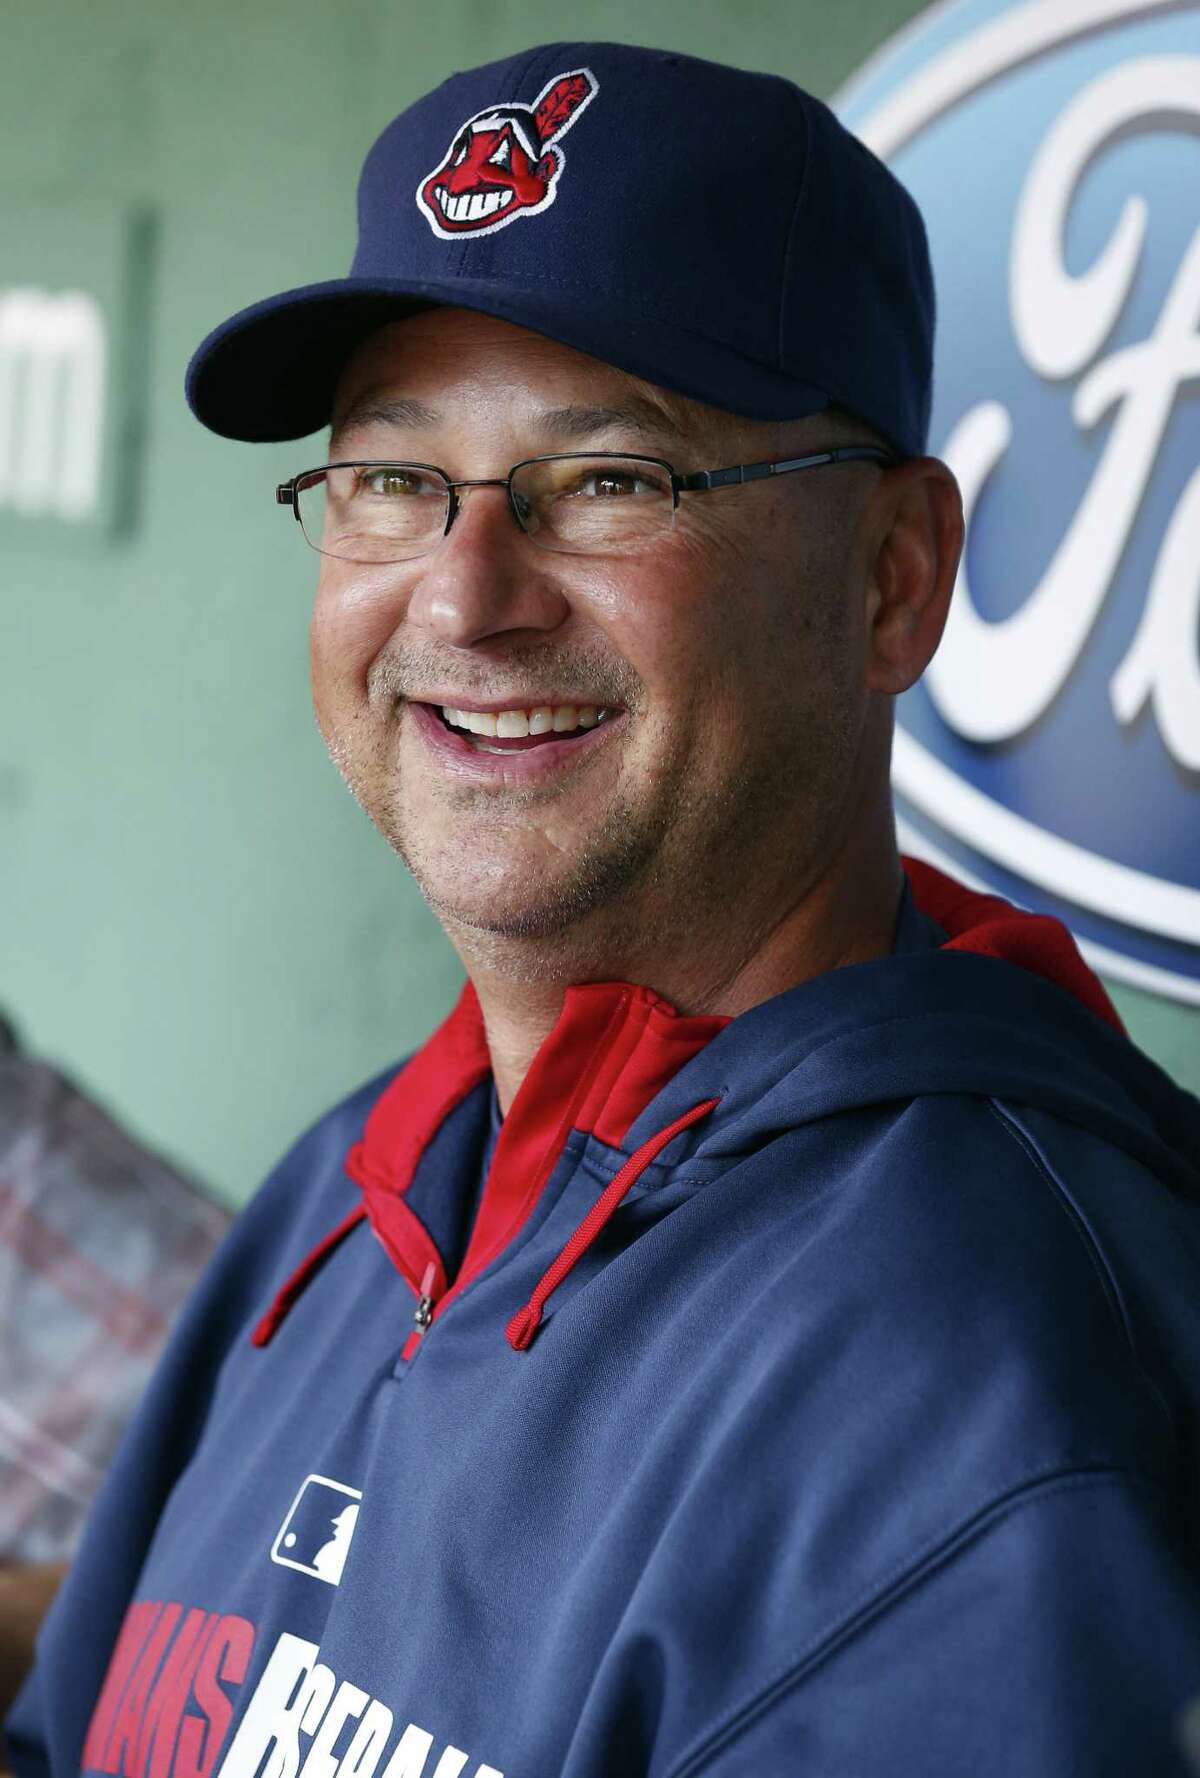 The Cleveland Indians agreed to a two-year contract extension with manager Terry Francona on Tuesday.